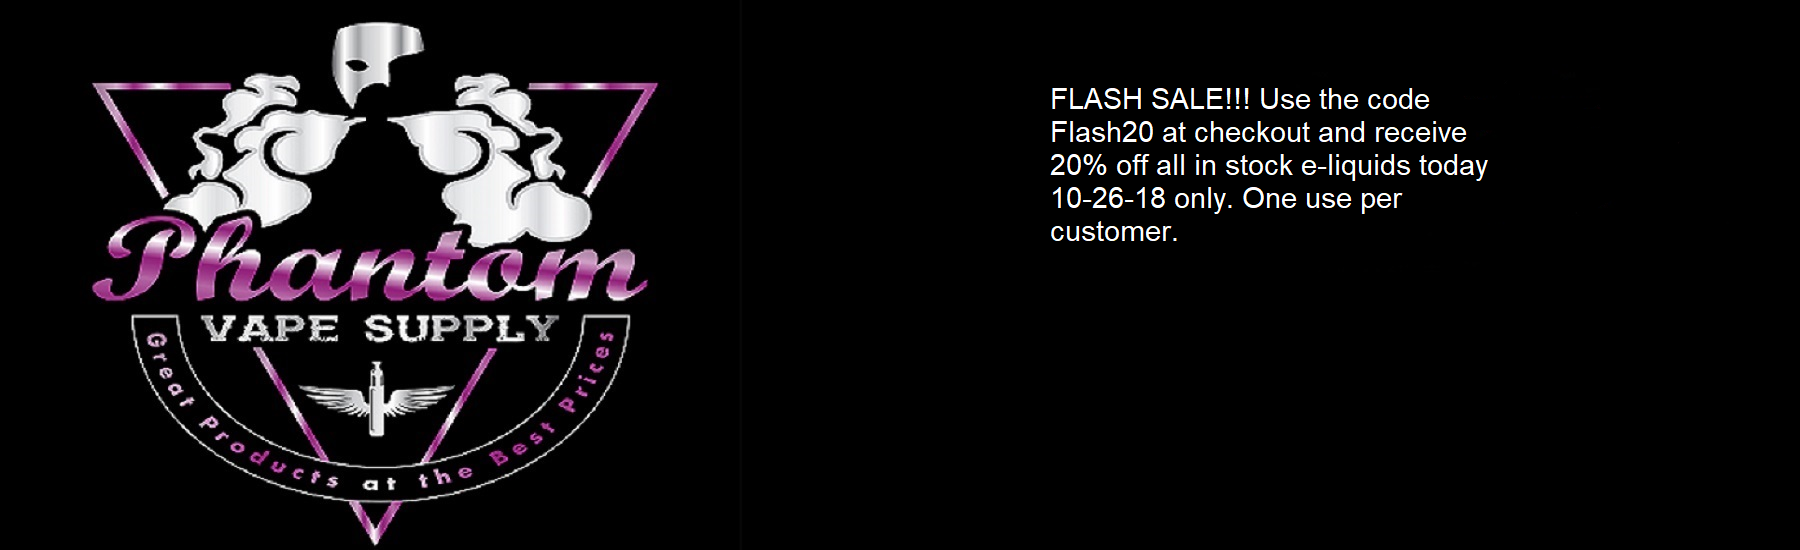 Phantom Vape Supply-20% off flash.png